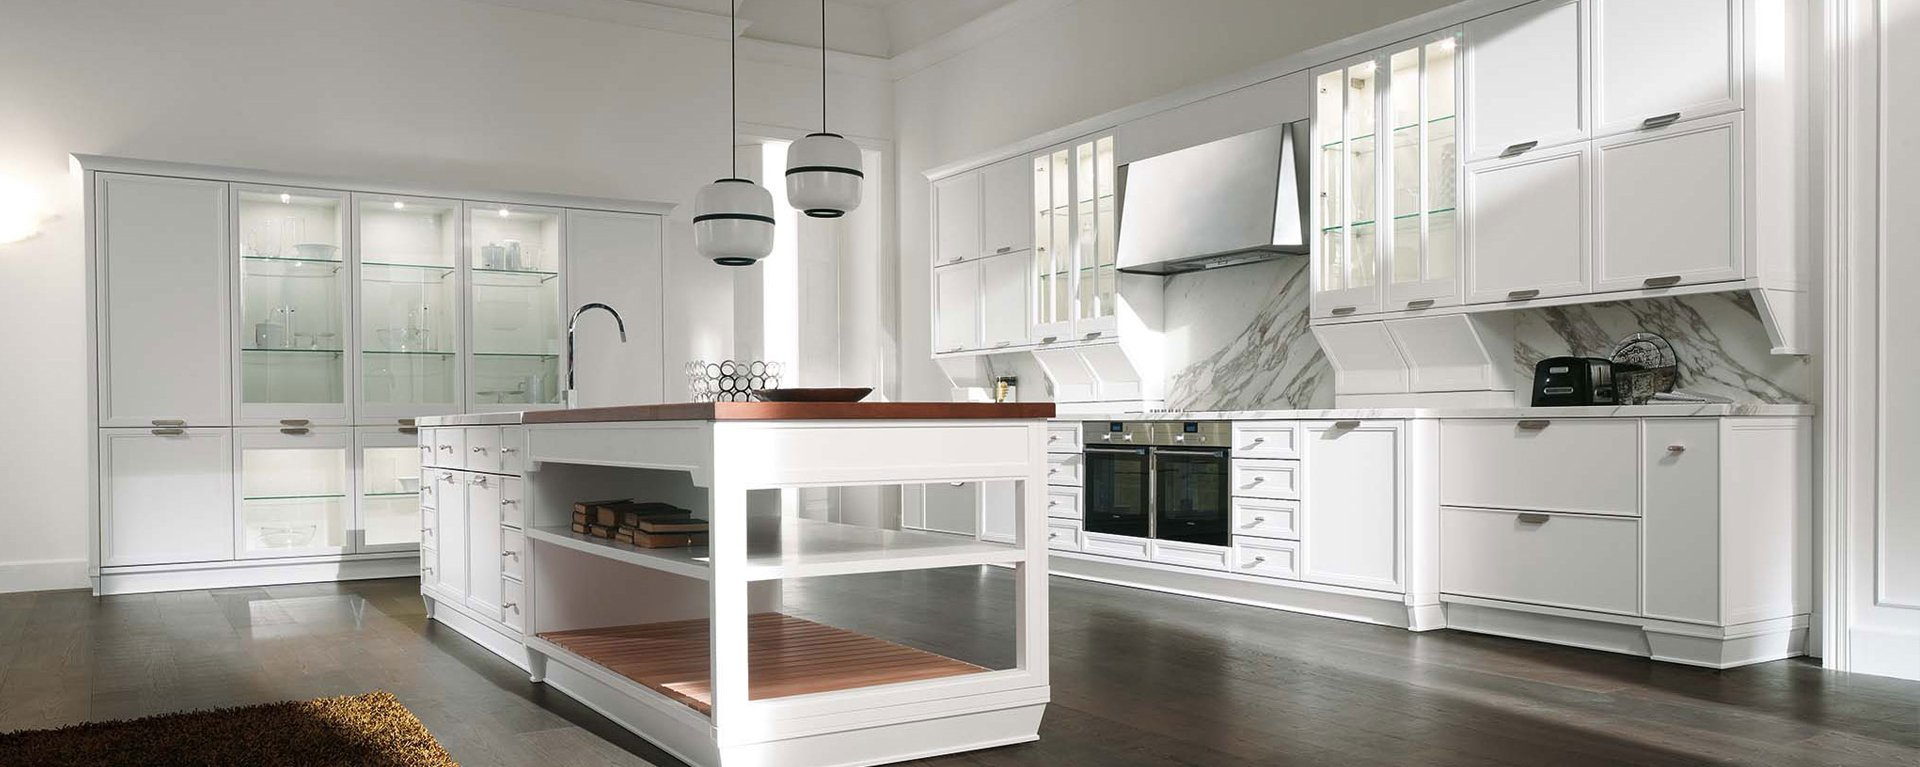 Classical Kitchens Dolce Vita Kitchen Bathroom Designs Contemporary Modern Classical